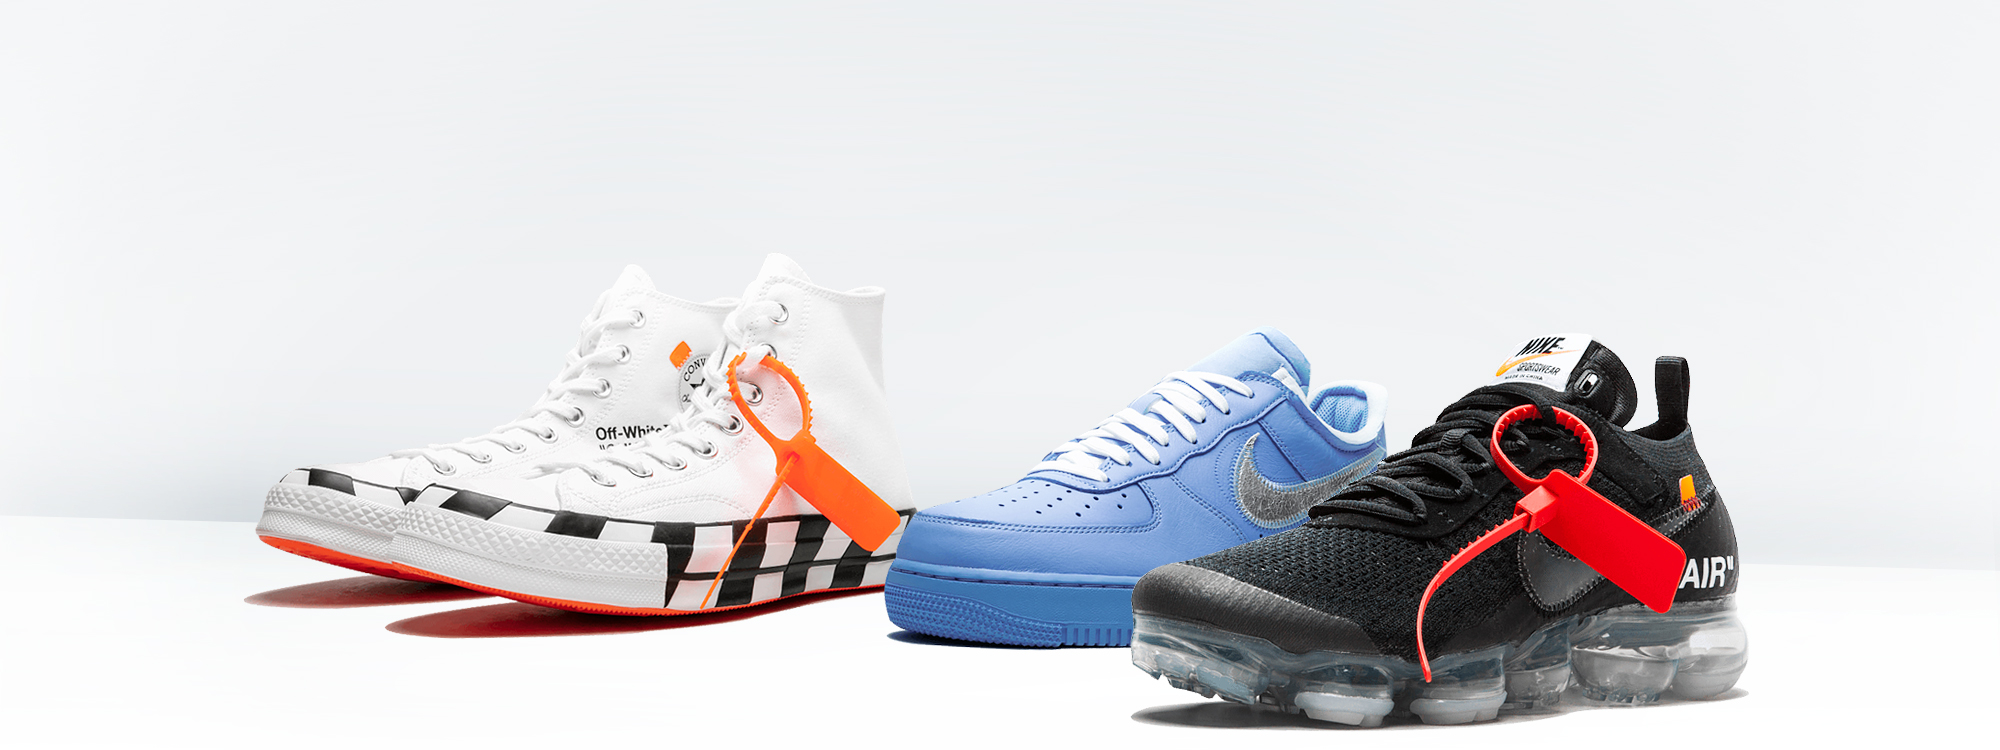 Nike Off-White    fashion gear for training